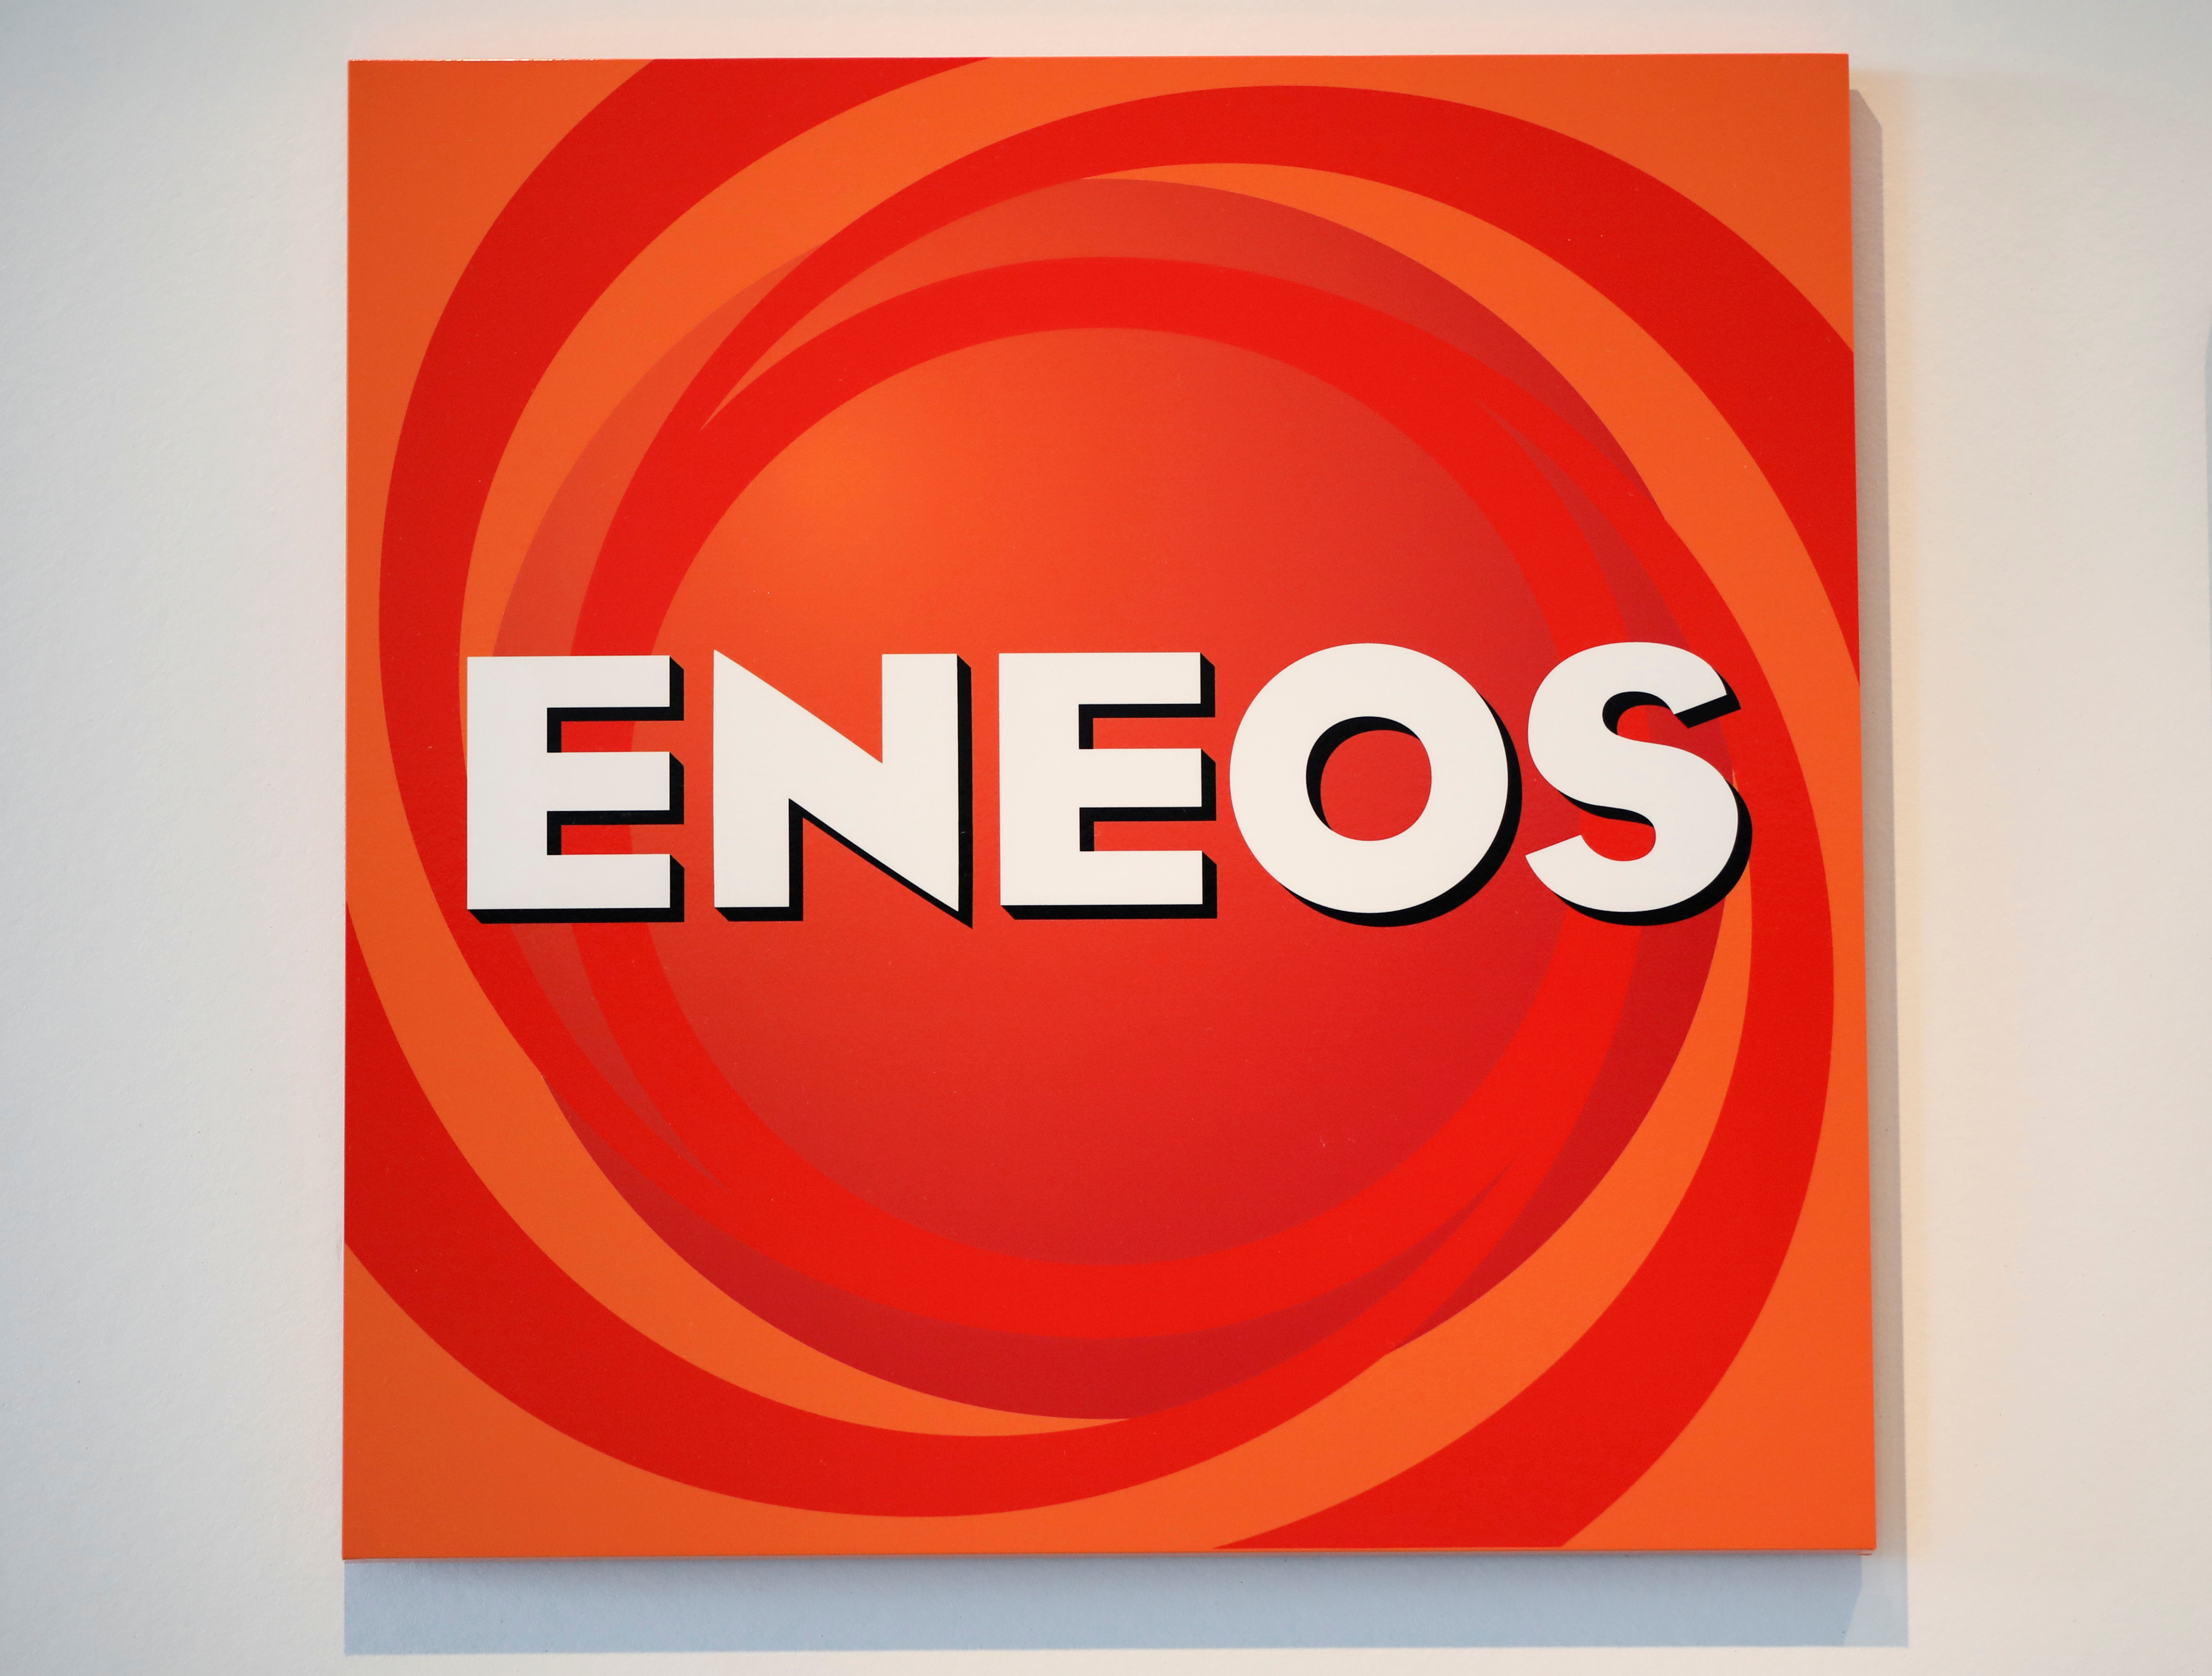 The logo of Eneos Holdings and Eneos Corporation is displayed at the company headquarters in Tokyo, Japan August 20, 2020. REUTERS/Issei Kato